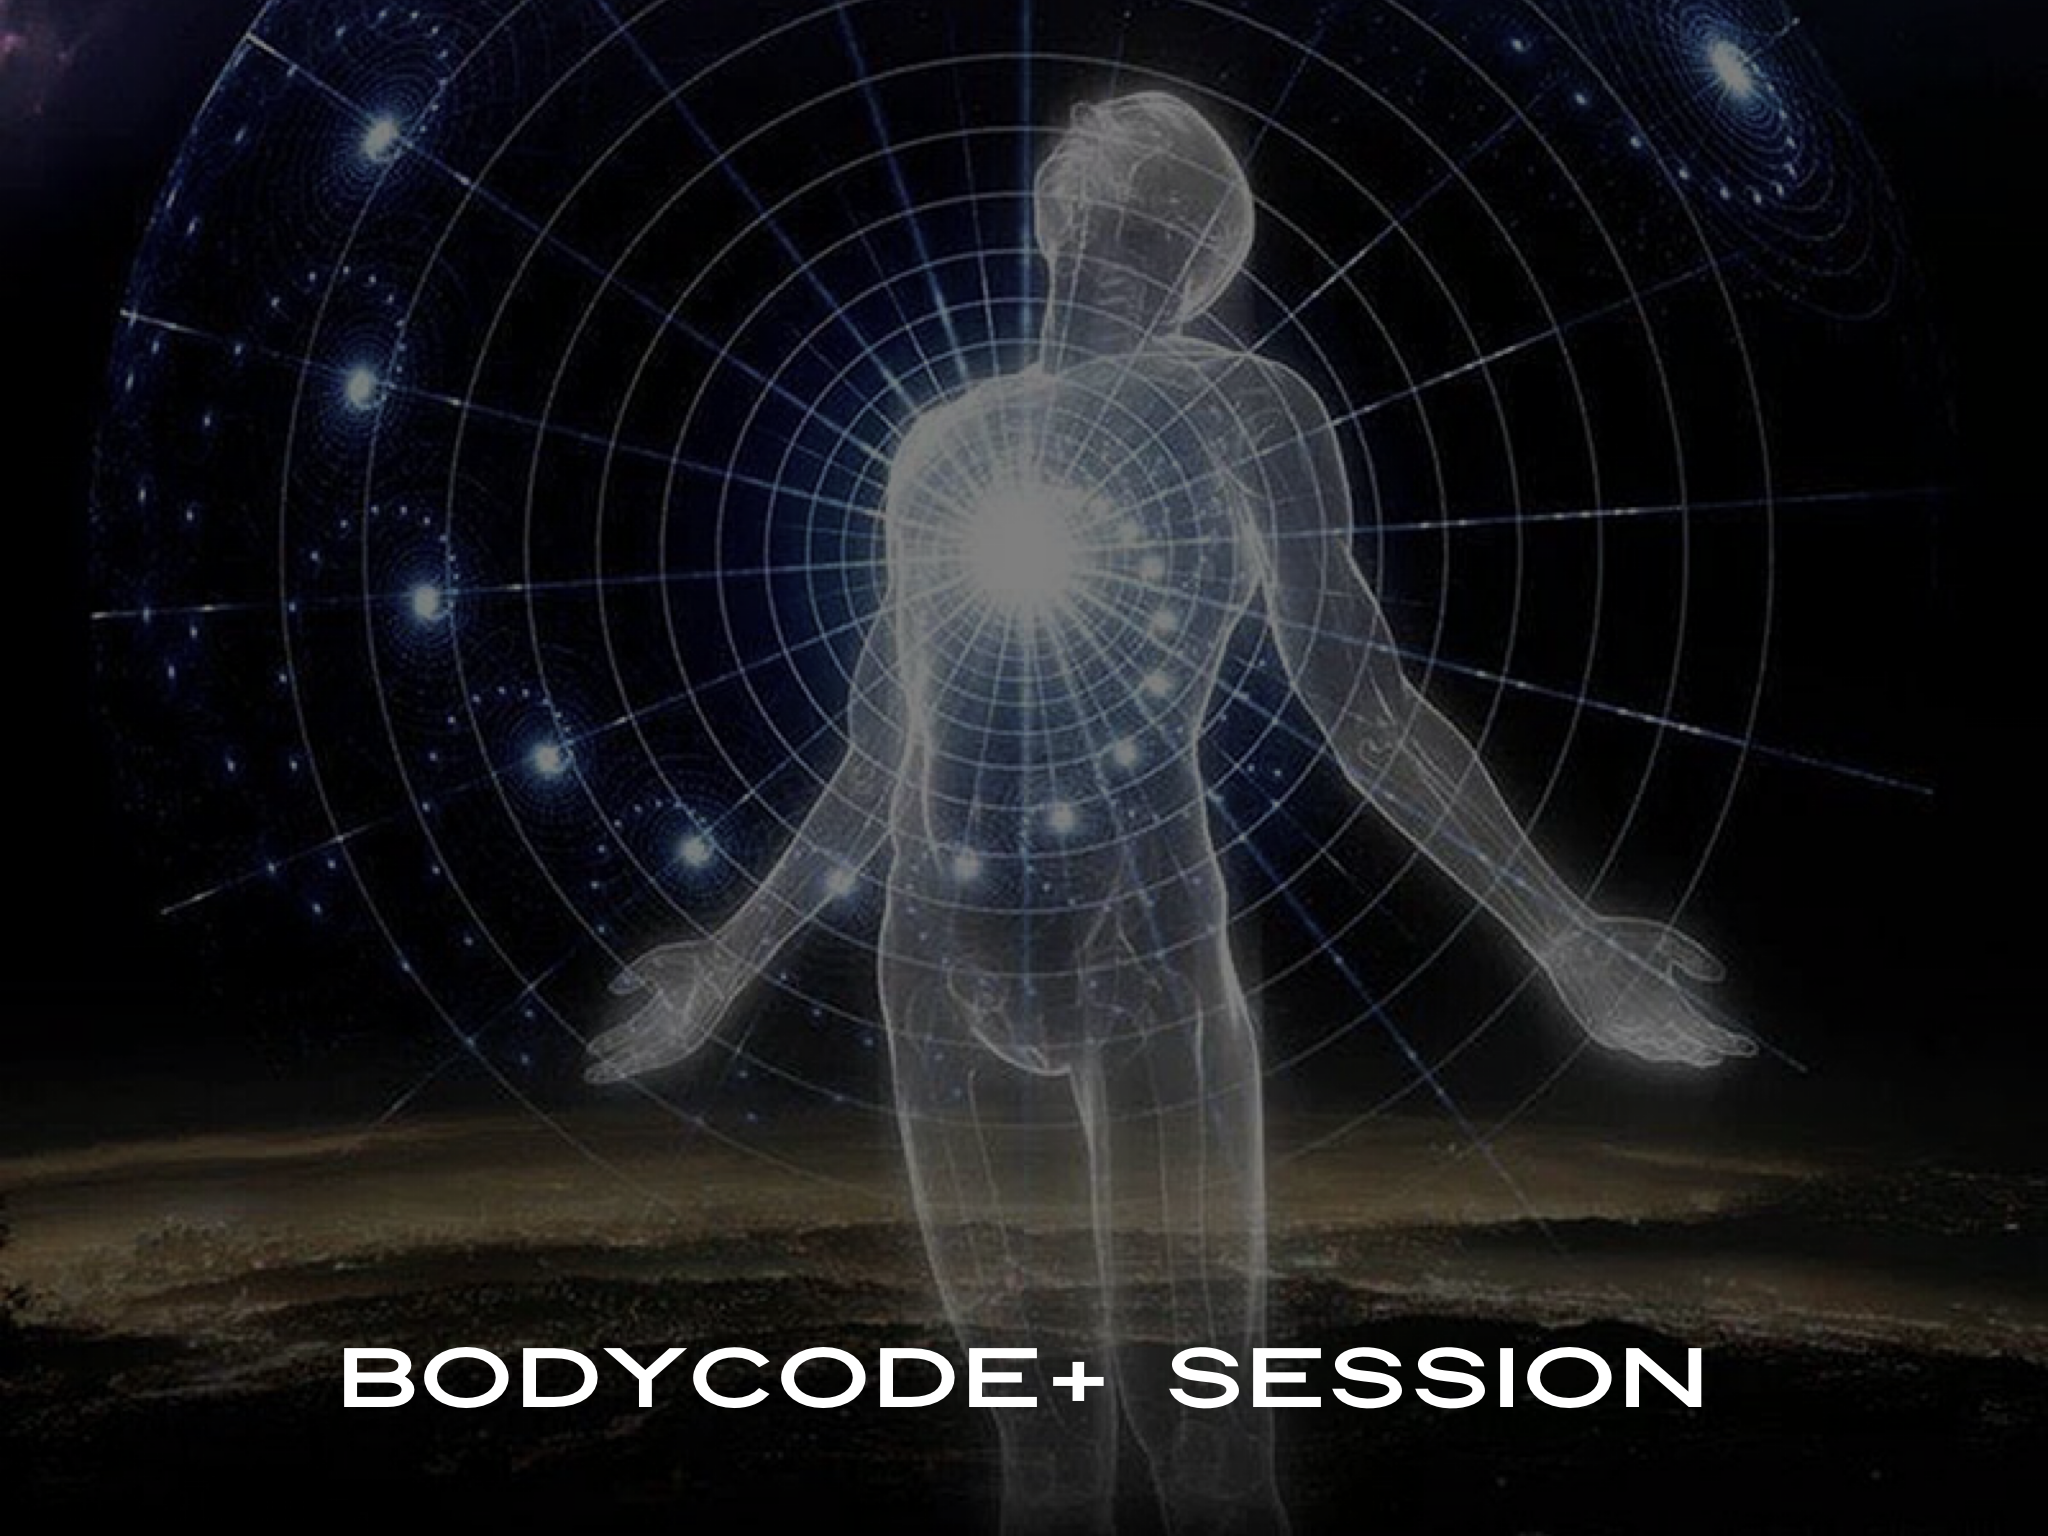 Bodycode+ Session